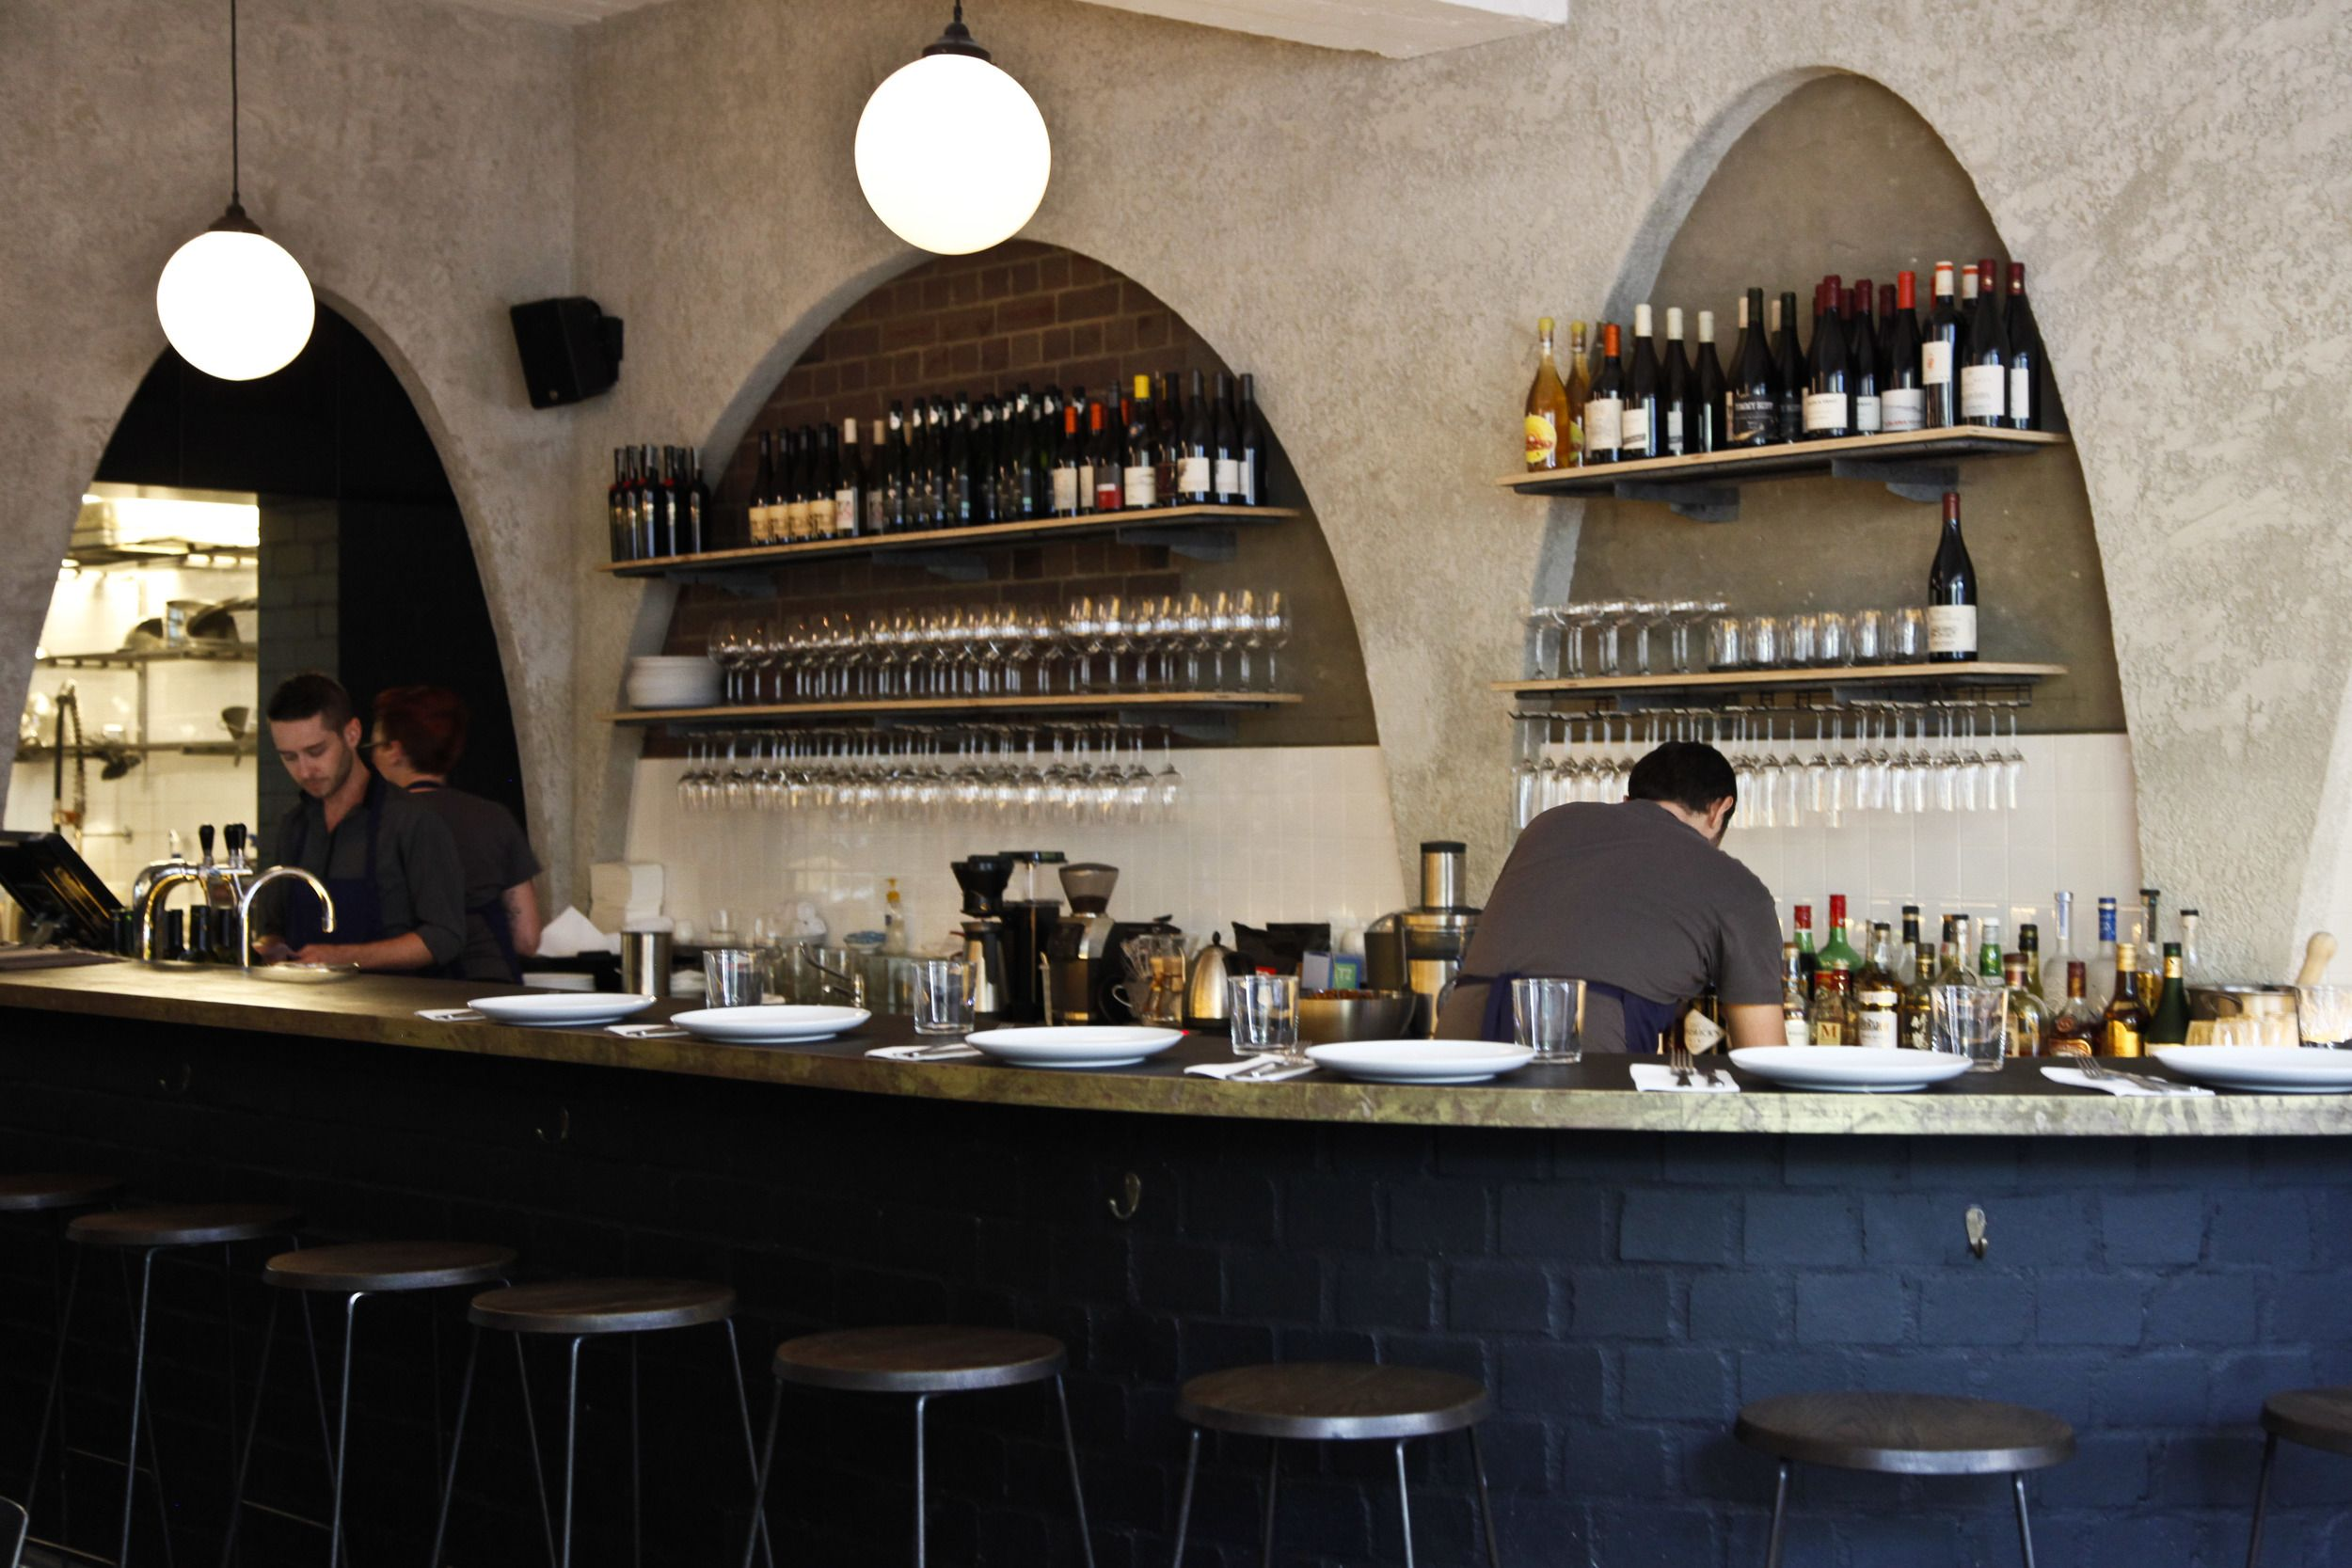 11 Best Sydney Restaurants Images On Pinterest - Sydney Restaurants,